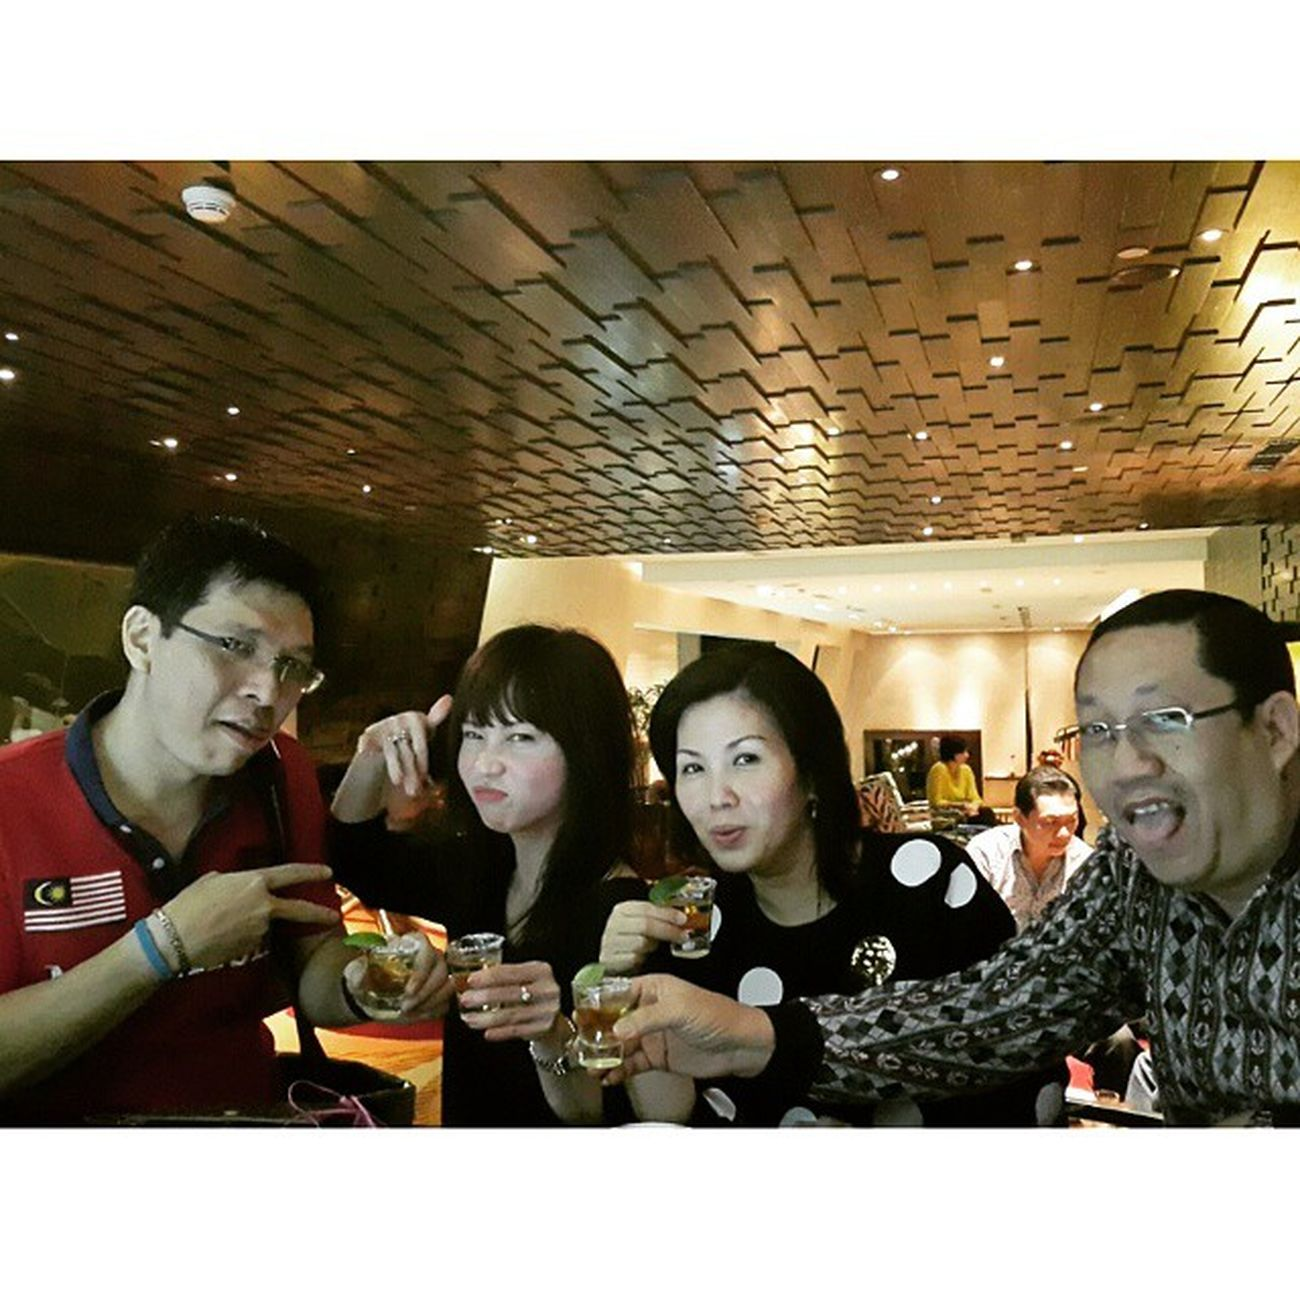 Self relax after longg meeting for 2 days ?? Hiltonhotel Hilton Bandung Meeting workstyle LifeStyle LifeVibe Liquer WineLover Travelmaniac Traveller 2015.01.09